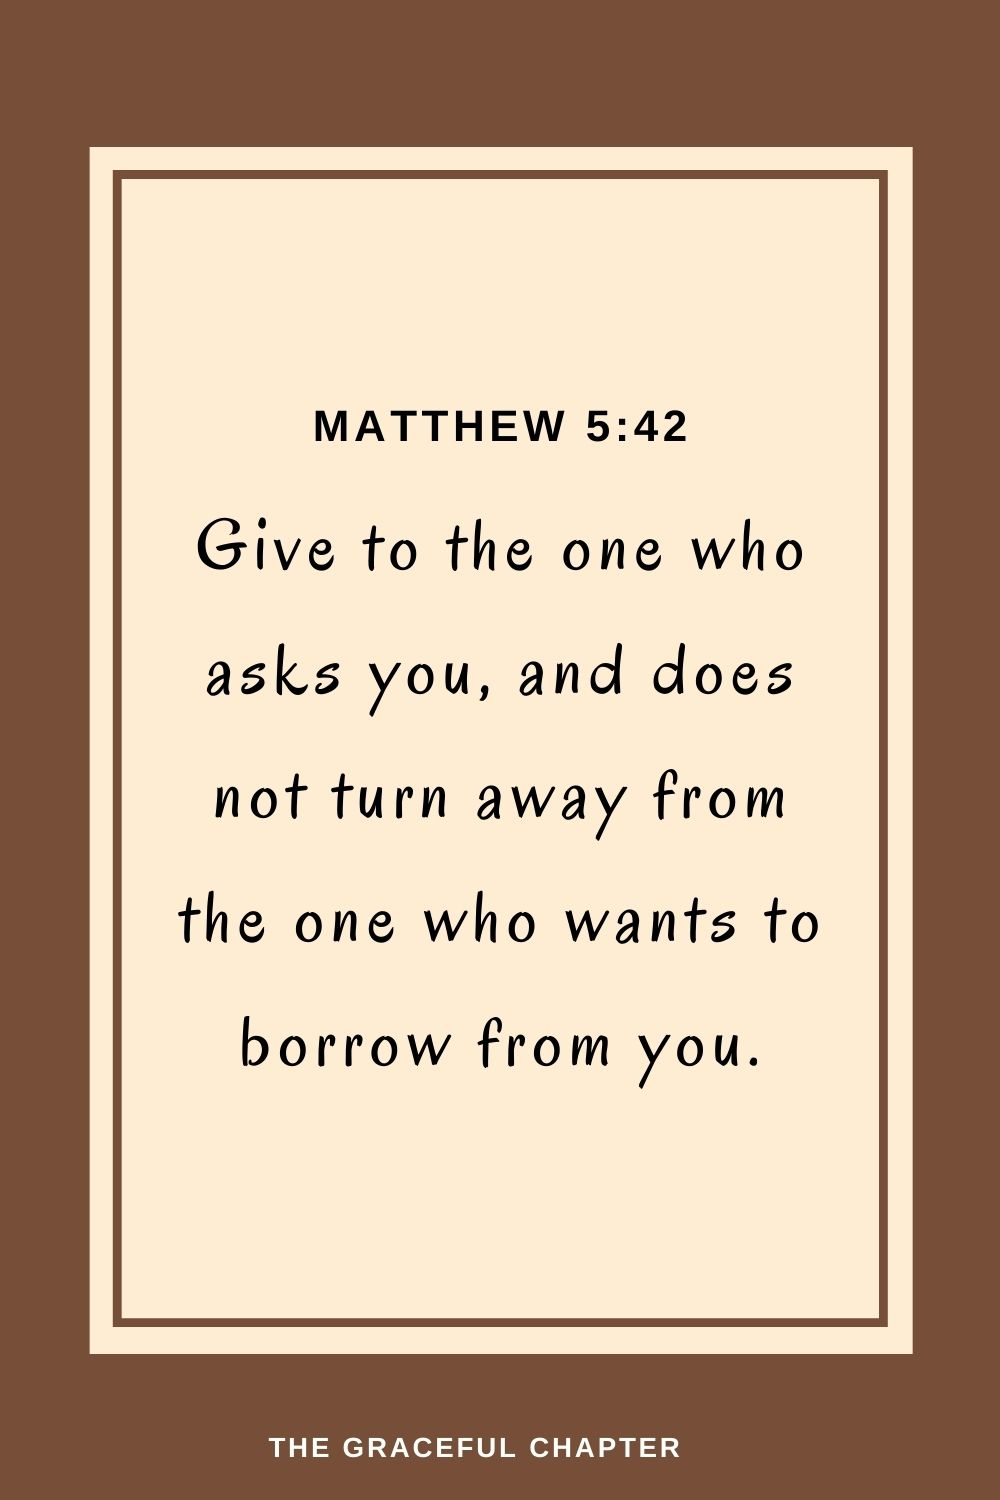 Give to the one who asks you, and does not turn away from the one who wants to borrow from you. Matthew 5:42